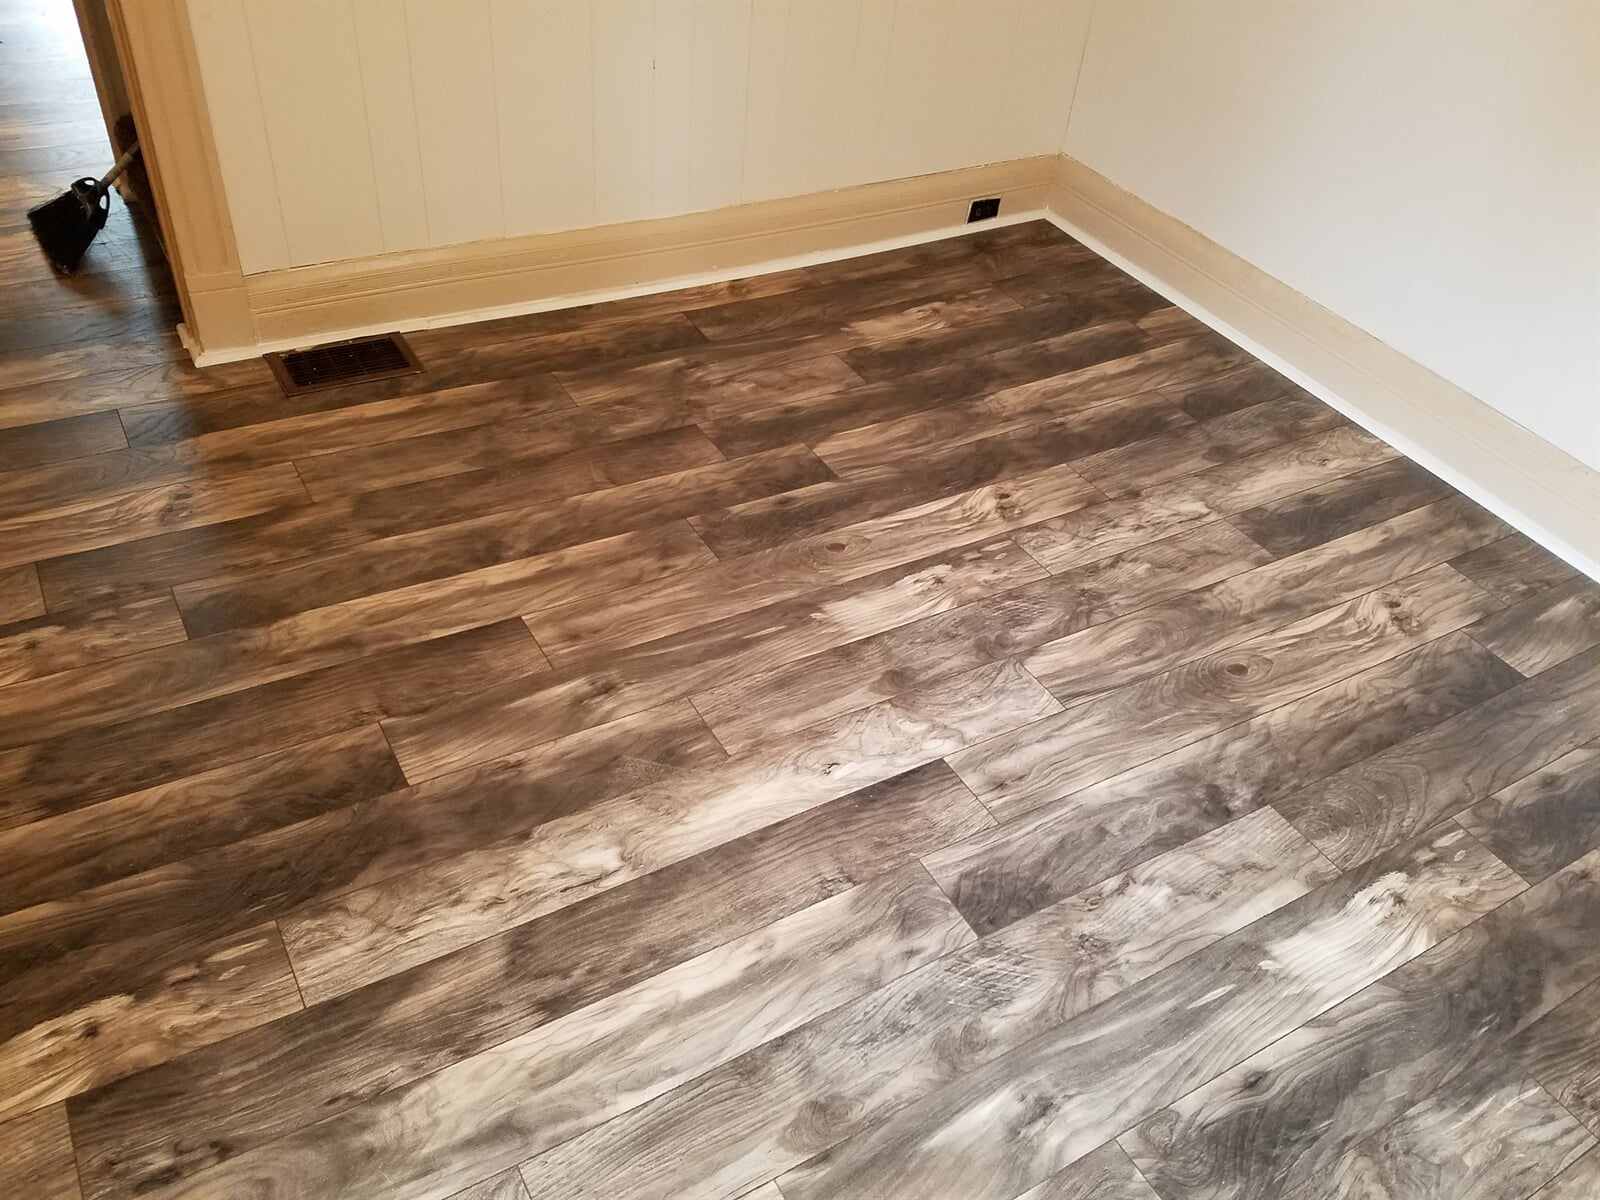 Hardwood Flooring in Room installed by RS Home Repair Services